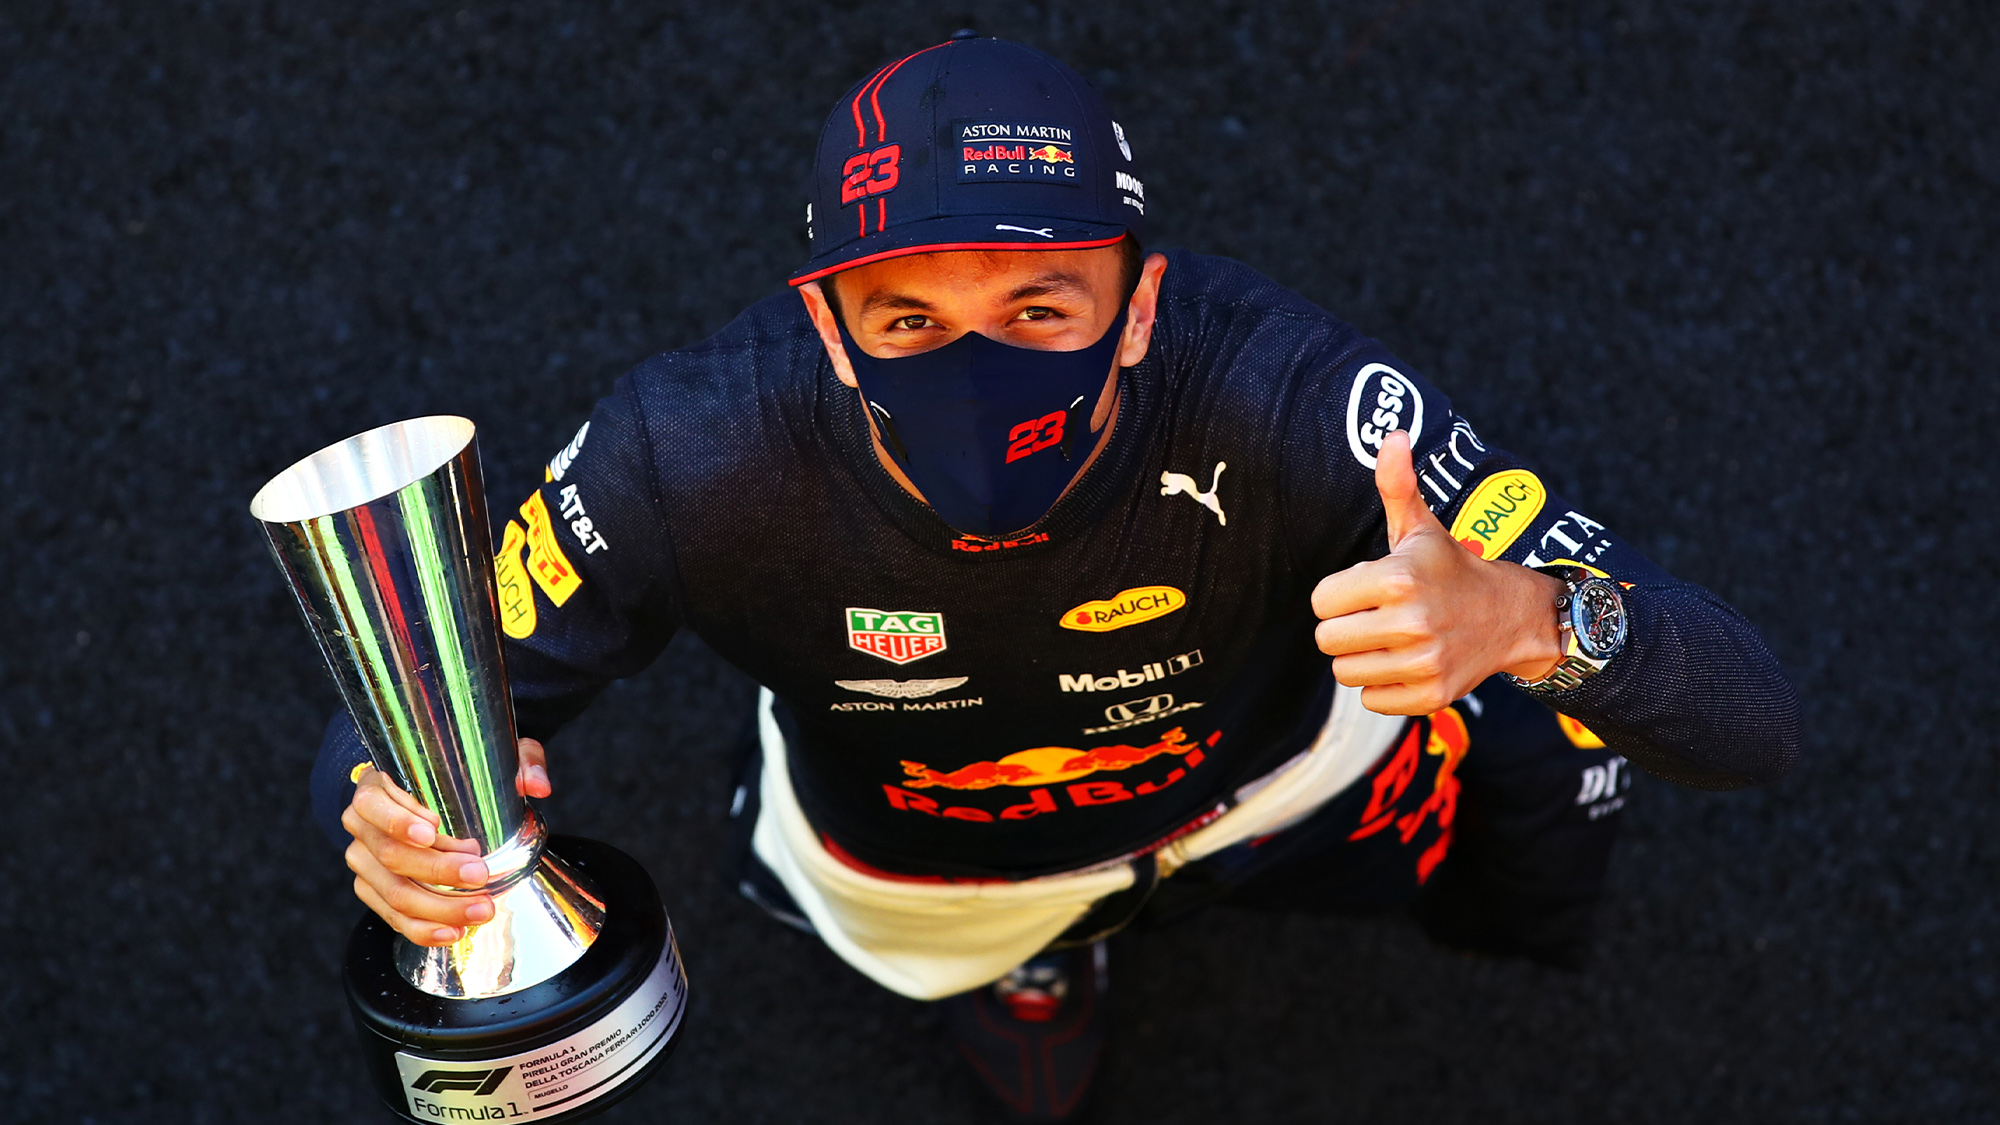 Alex Albon holds his trophy after finishing in third place in the 2020 F1 Tuscan Grand Prix at Mugello